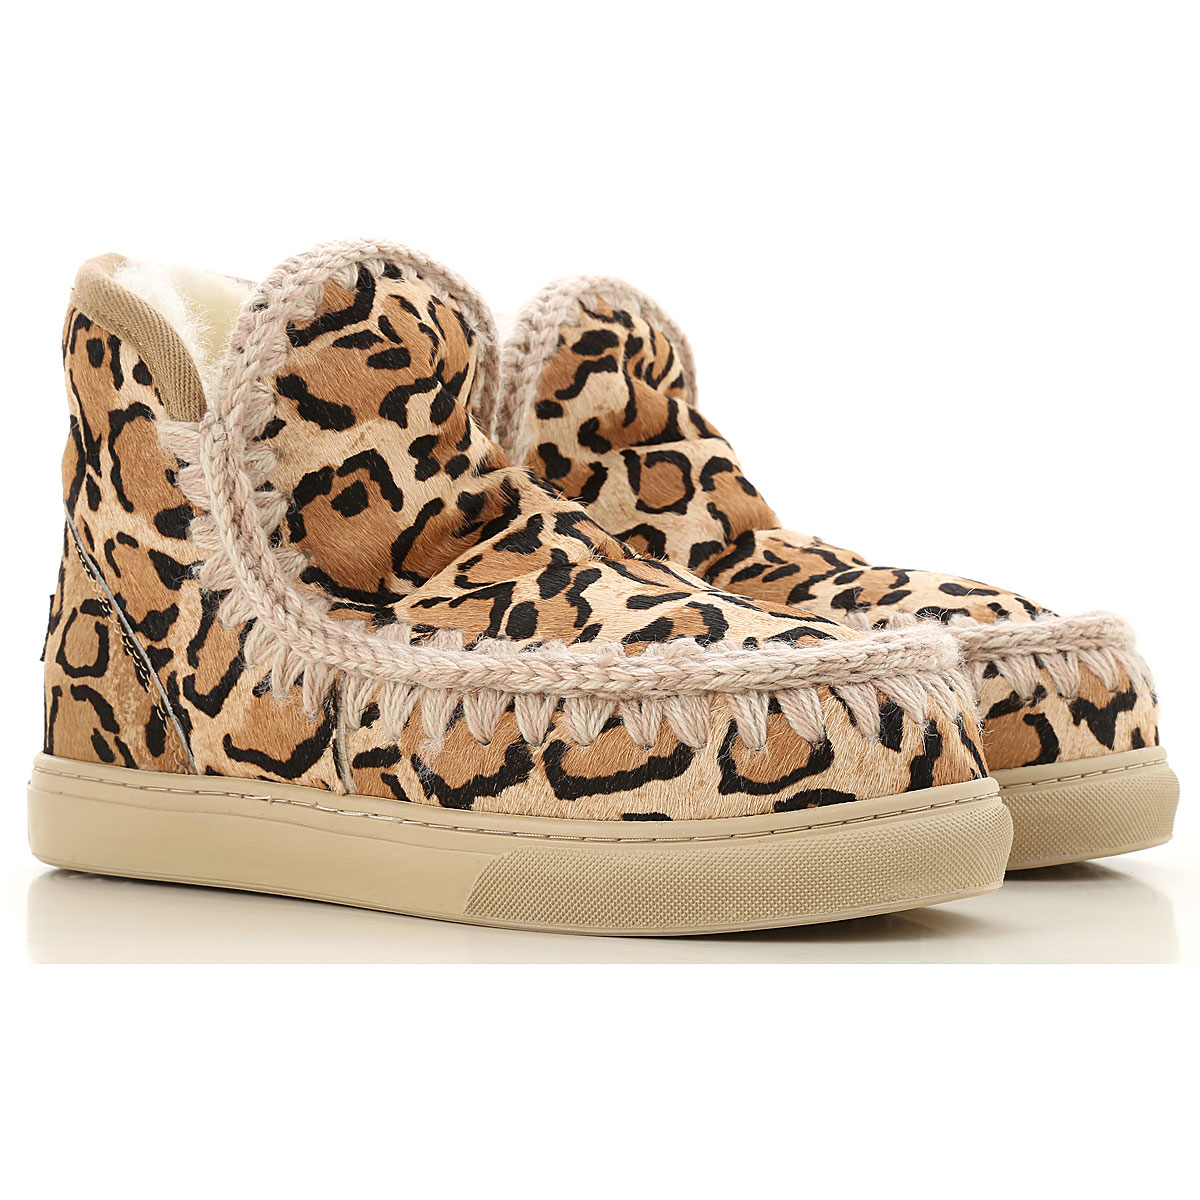 Mou Boots for Women, Booties On Sale, Leopard sand, Fur, 2019, Eu 35 EUR 37 - UK 4 - USA 6.5 EUR 39 - UK 6 - USA 8.5 EUR 40 - UK 7 - USA 9.5